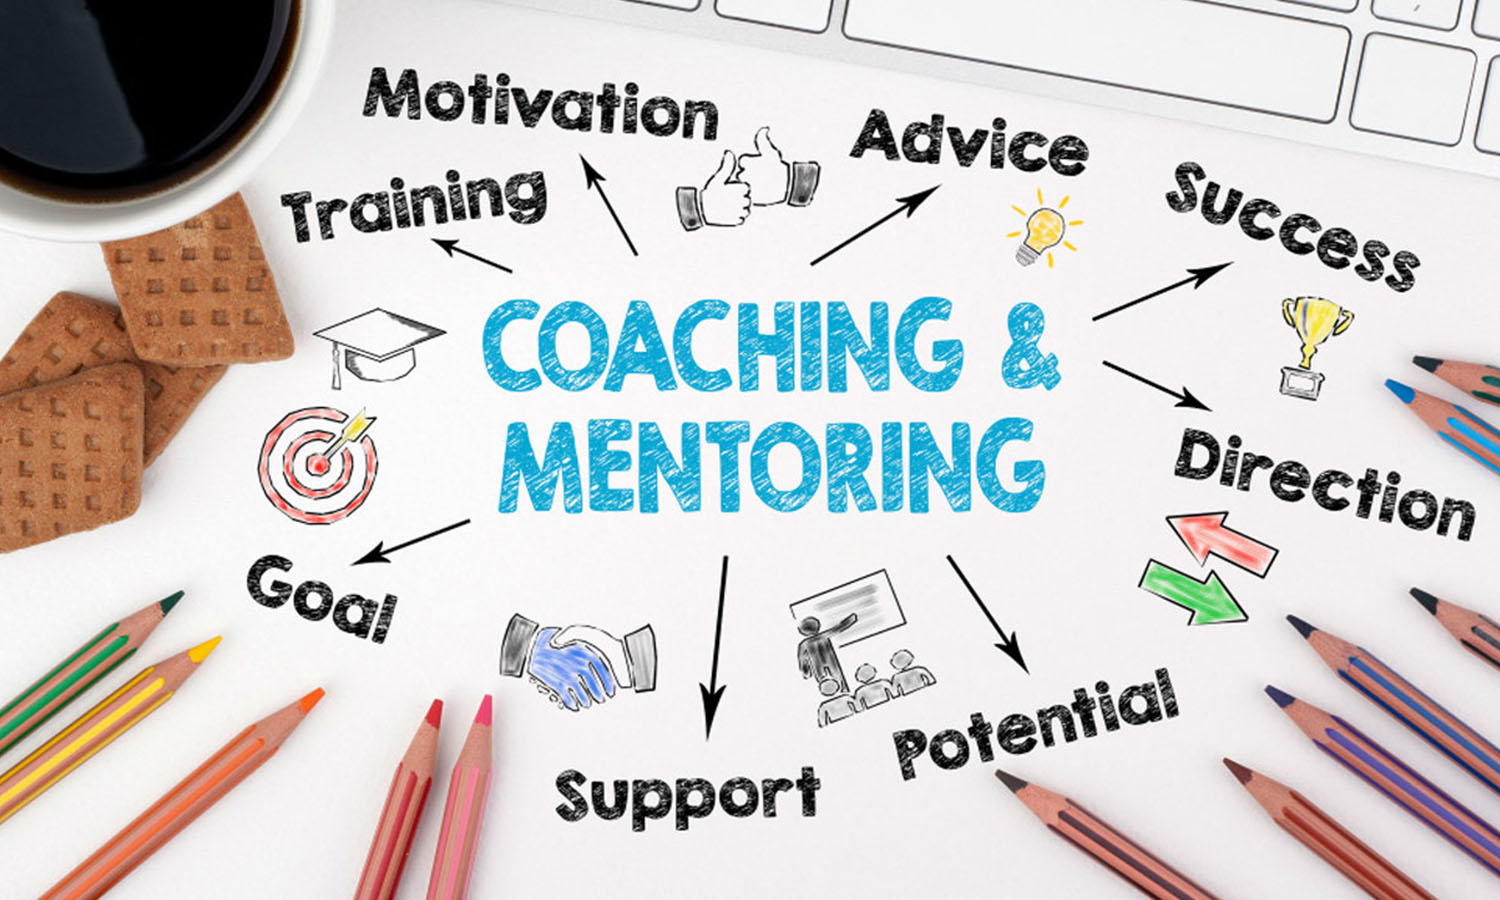 5 Golden Keys to Successful Mentoring